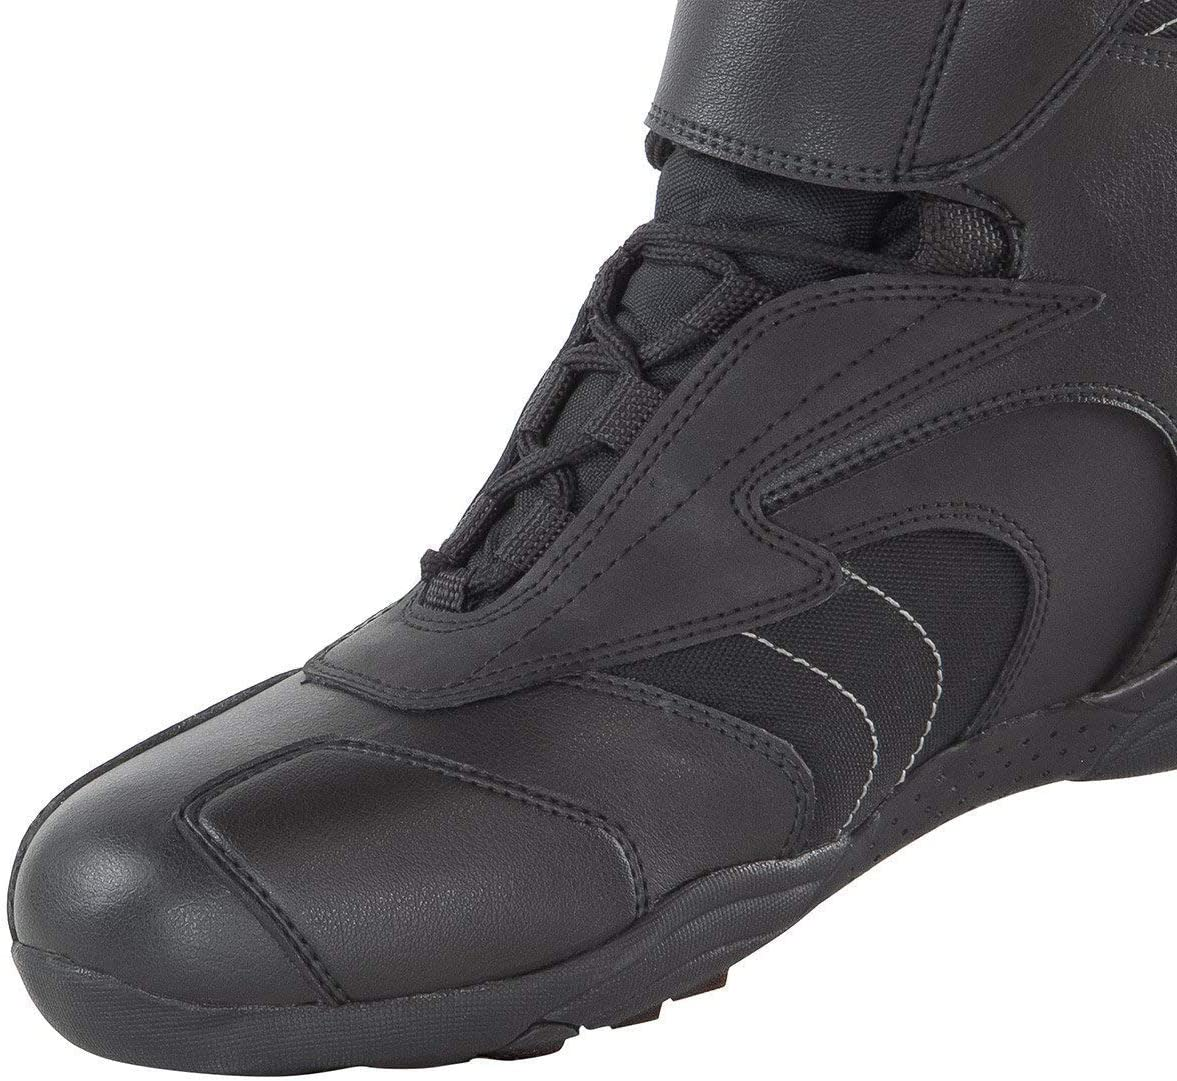 Vulcan V310 Mens Leather Motorcycle Troop Sport Boots 11